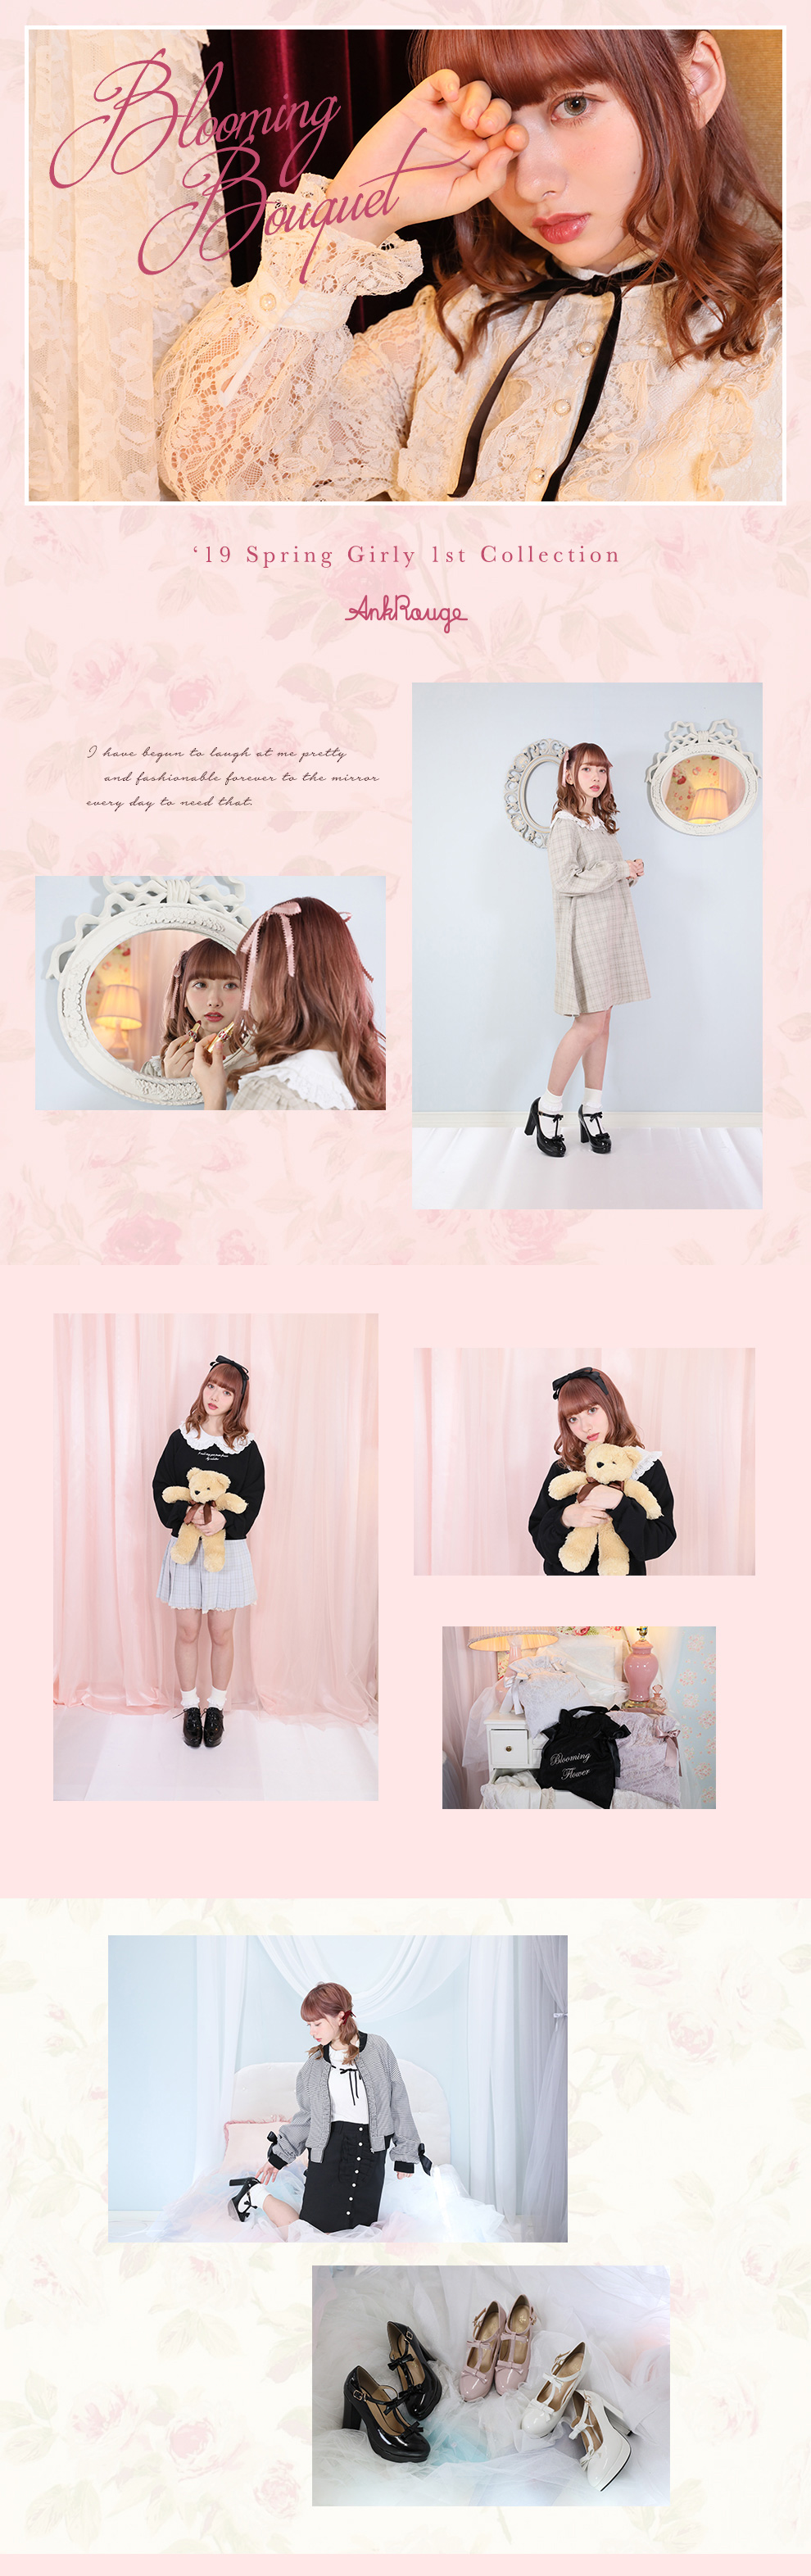 19 Spring Girly 1st Collection